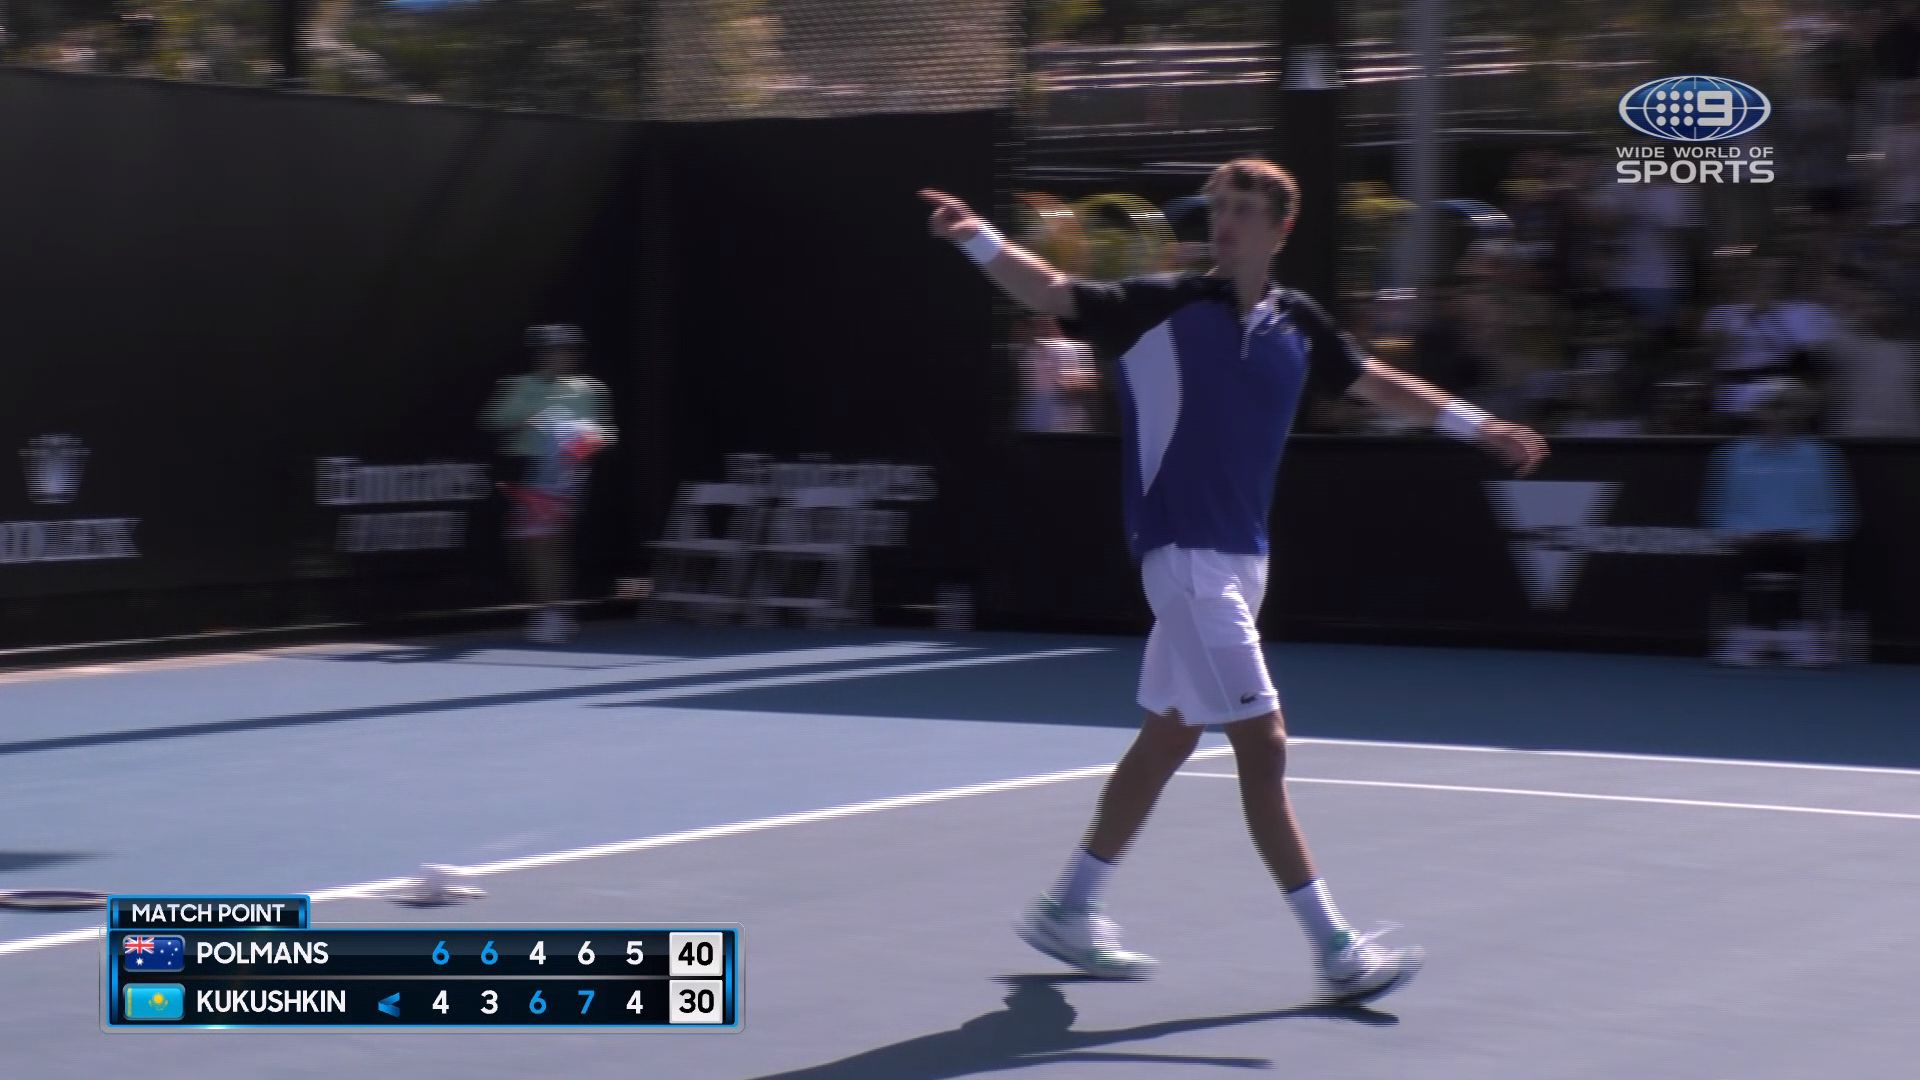 'A dream come true': Unheralded Aussie youngster Marc Polmans stuns Australian Open with thrilling five-set victory